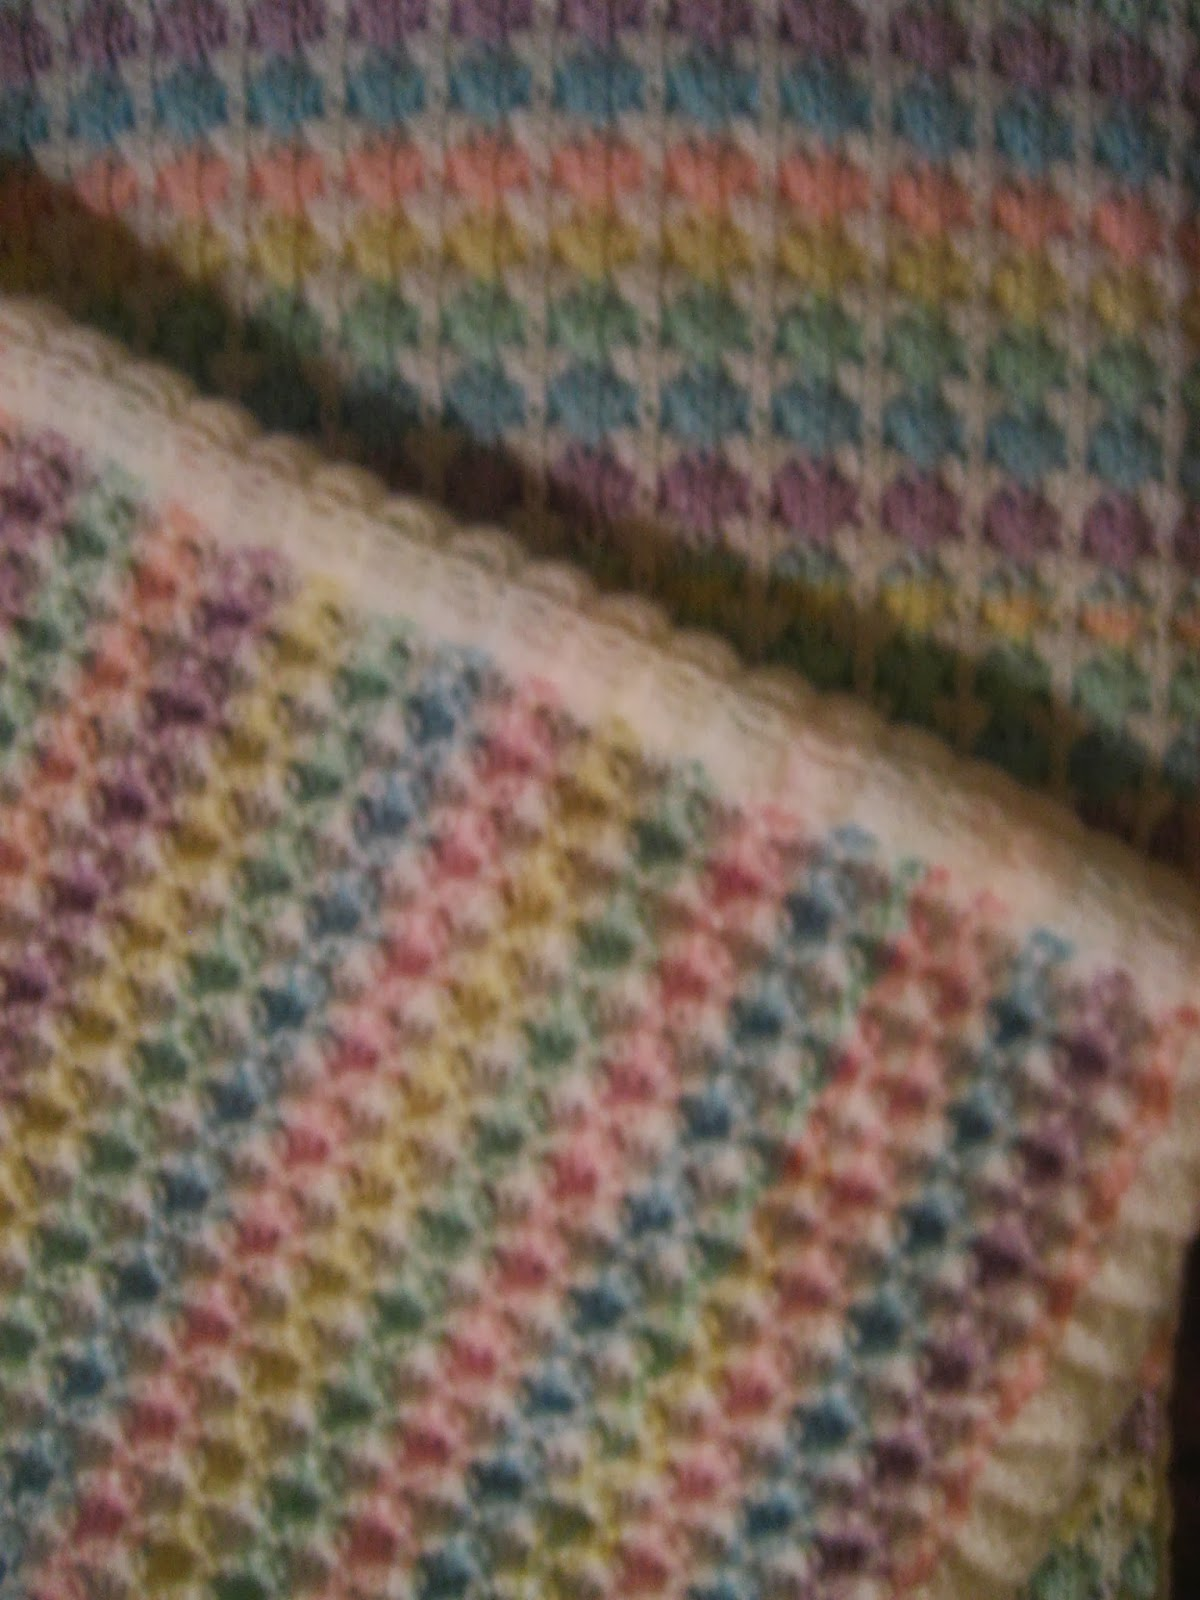 Best Knitting Stitch For Baby Blanket : Diana natters on... about machine knitting: Newtons Knits Spring Fling -...